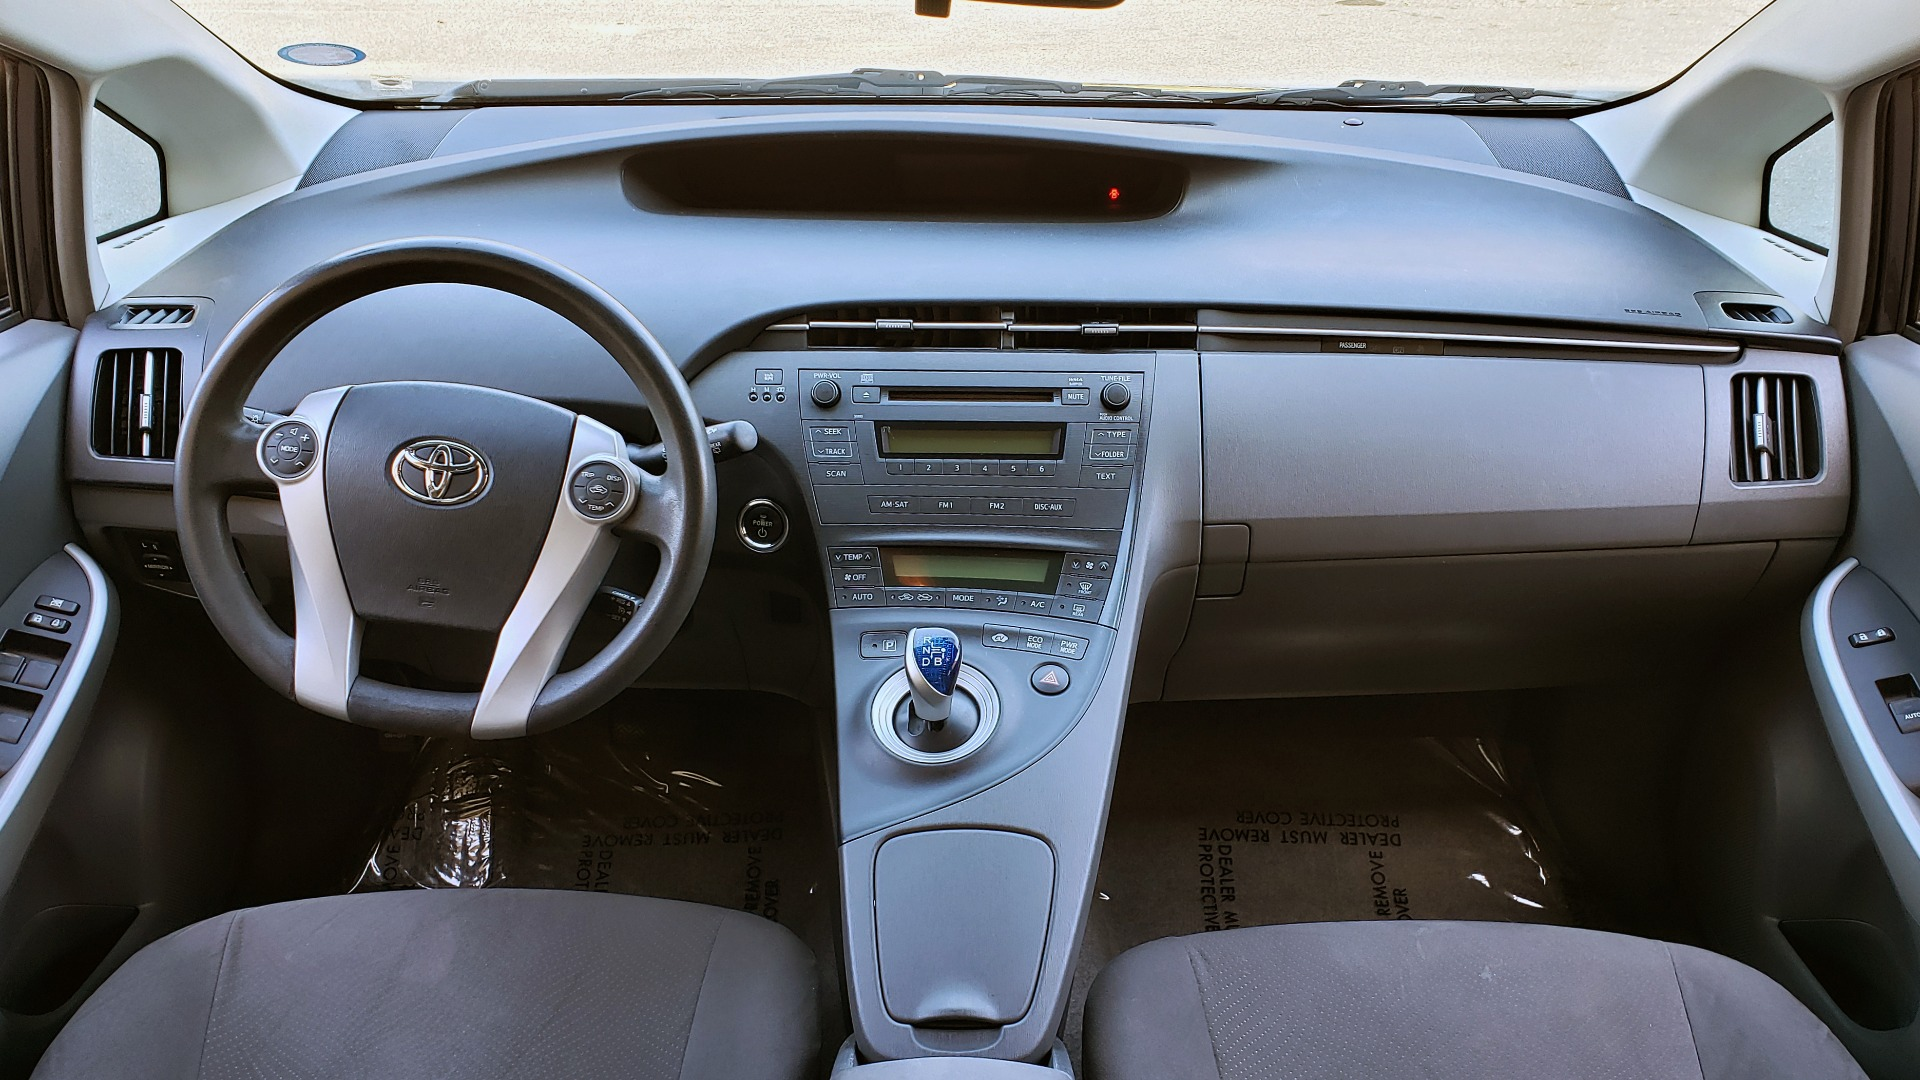 Used 2011 Toyota PRIUS ONE / HYBRID / 5-DOOR / HATCHBACK / 50MPG for sale Sold at Formula Imports in Charlotte NC 28227 71